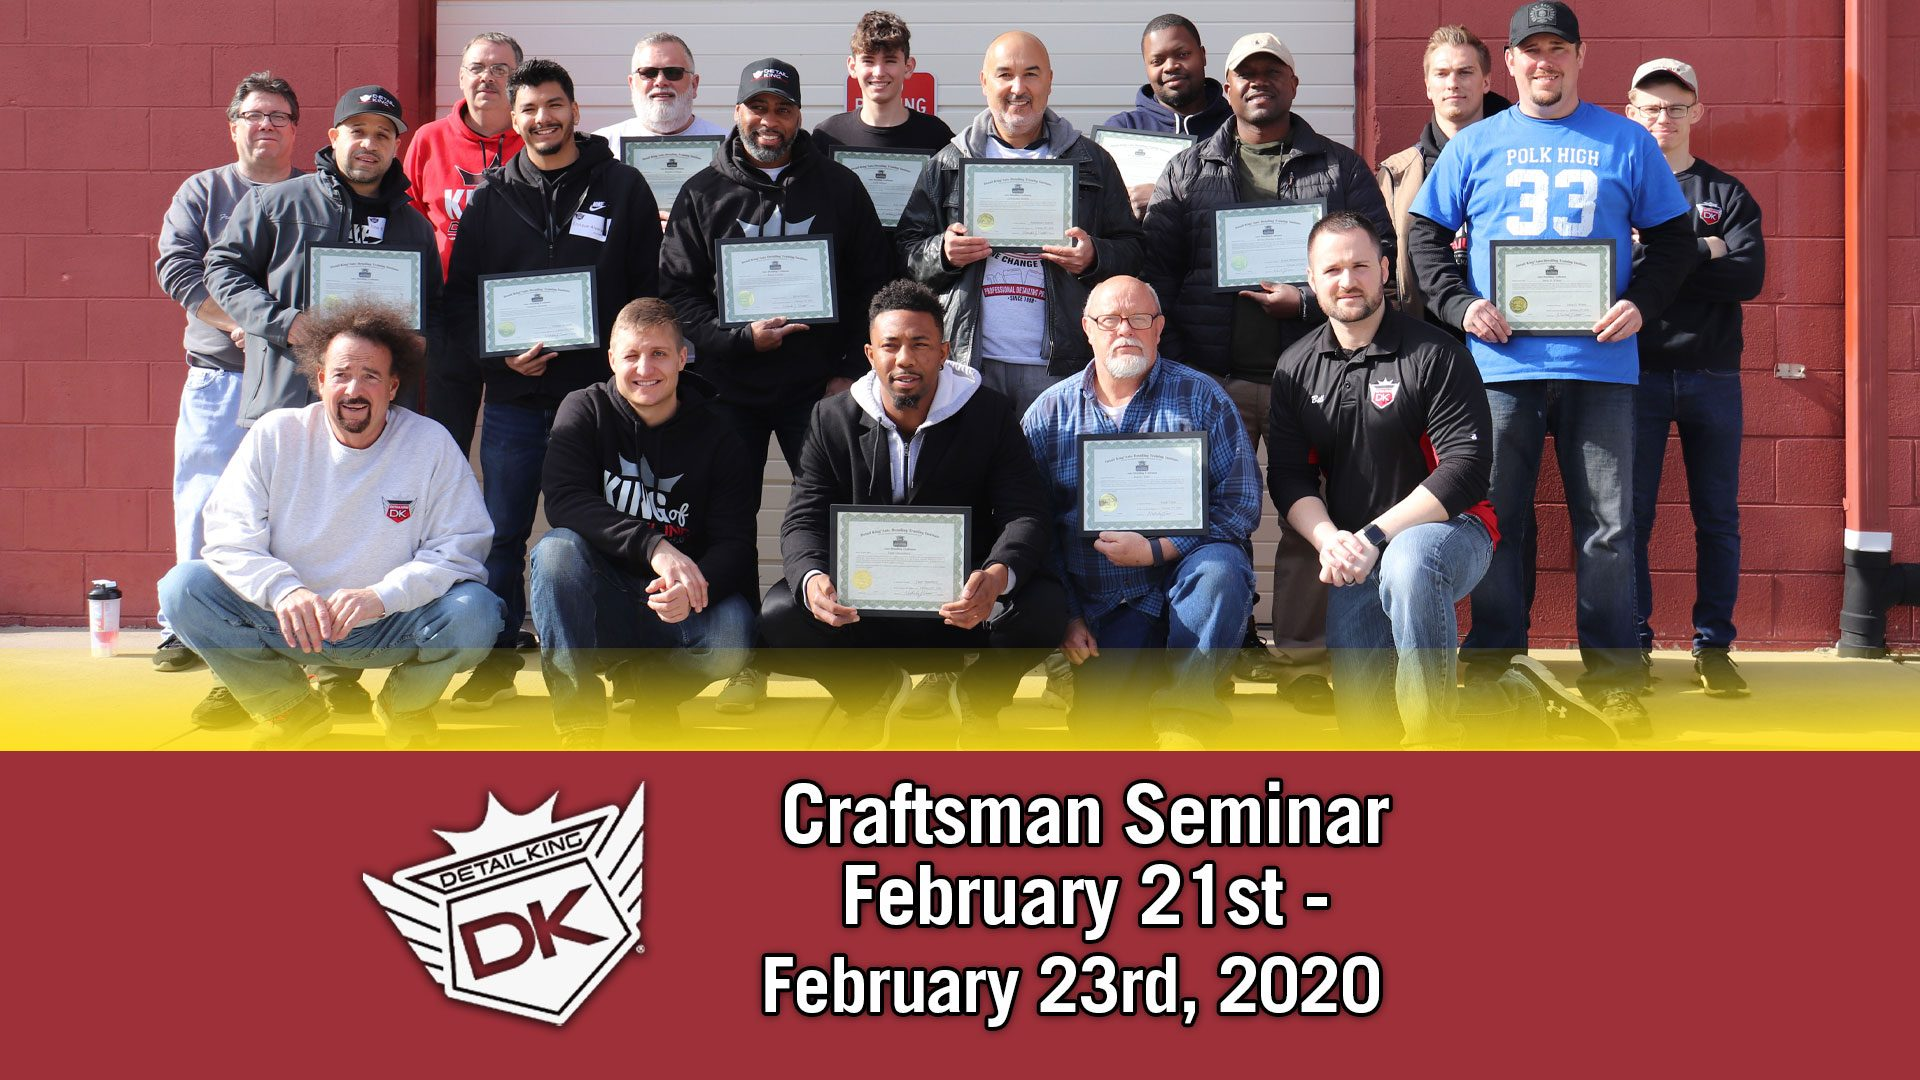 February 21st-23rd 2020 Craftsman Seminar